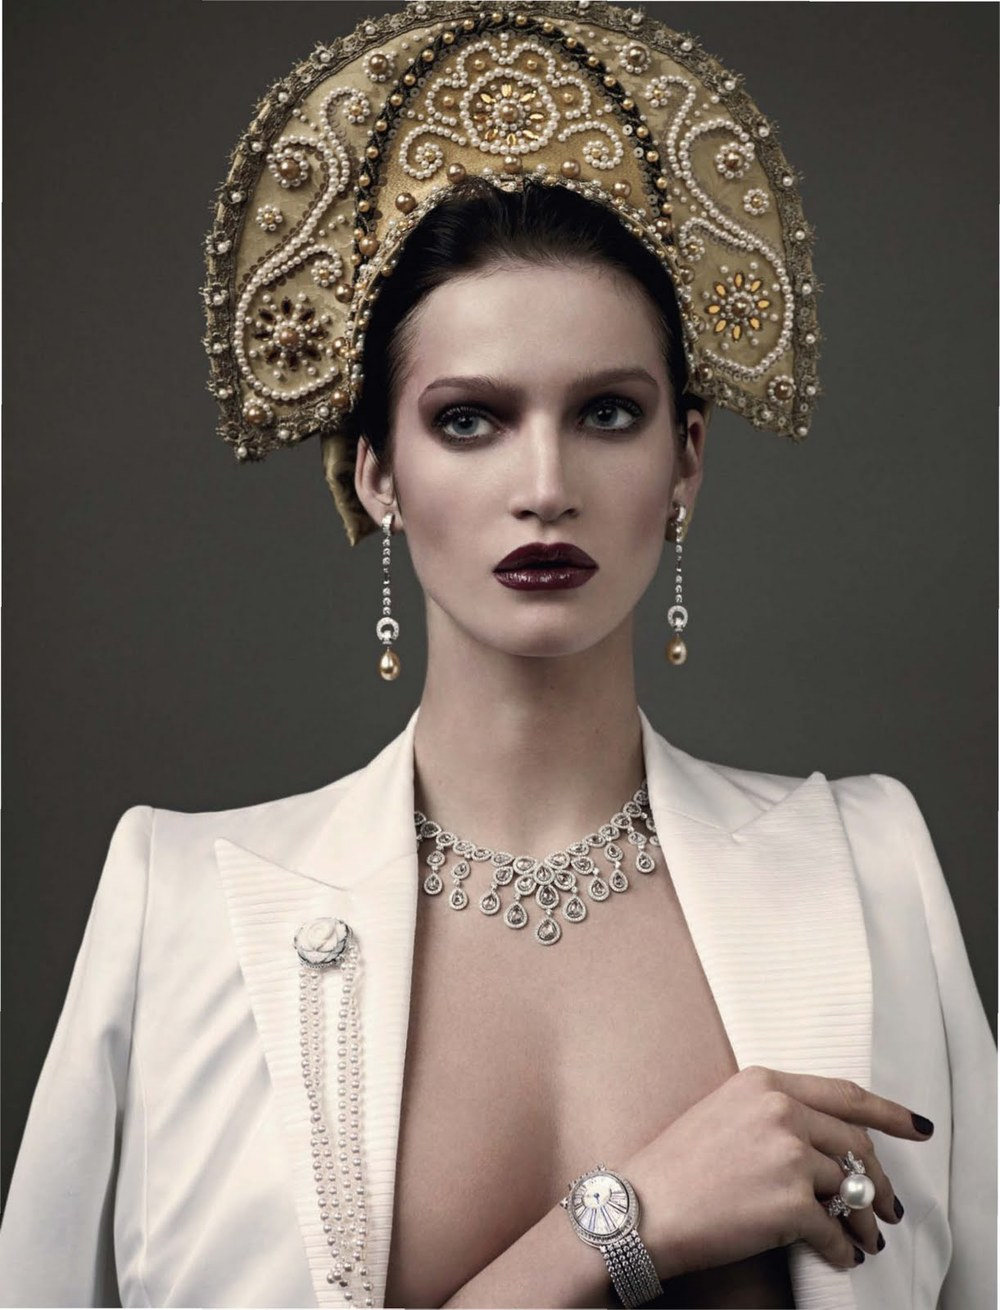 Vogue Russia April 2011, Model: Marta Berzkalna photographed by Mariano Vivanco